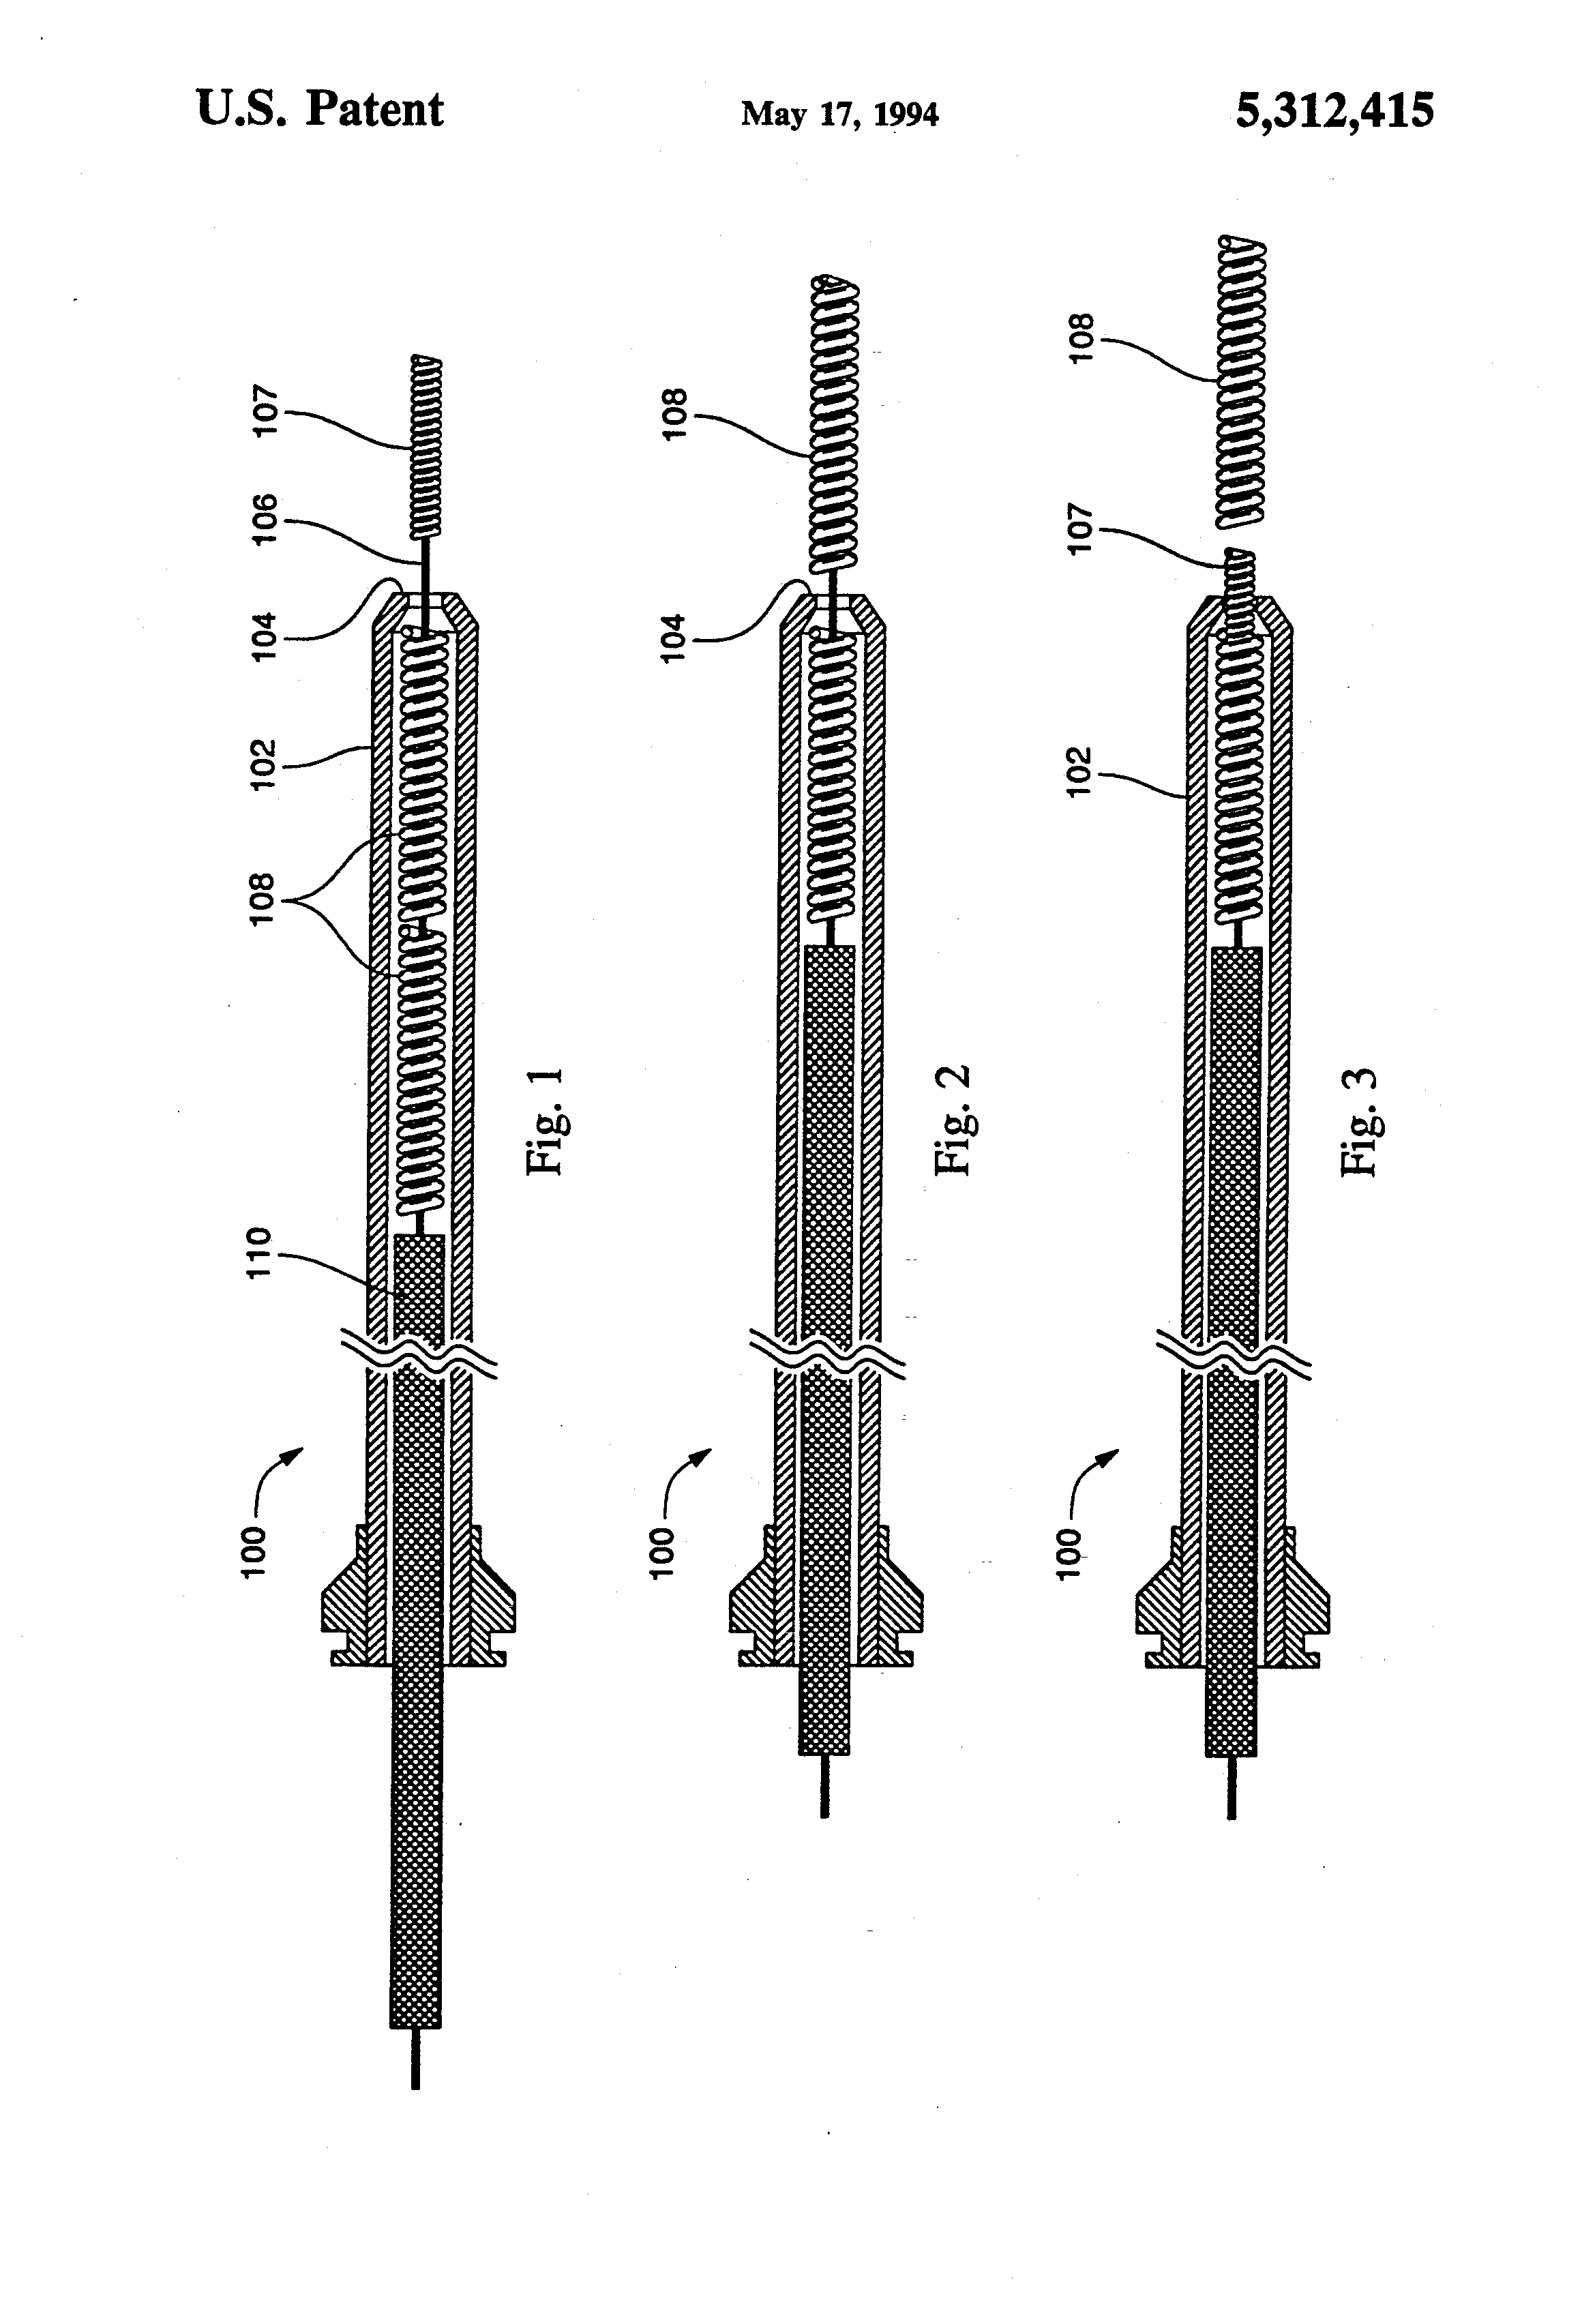 brevet us5312415 assembly for placement of embolic coils